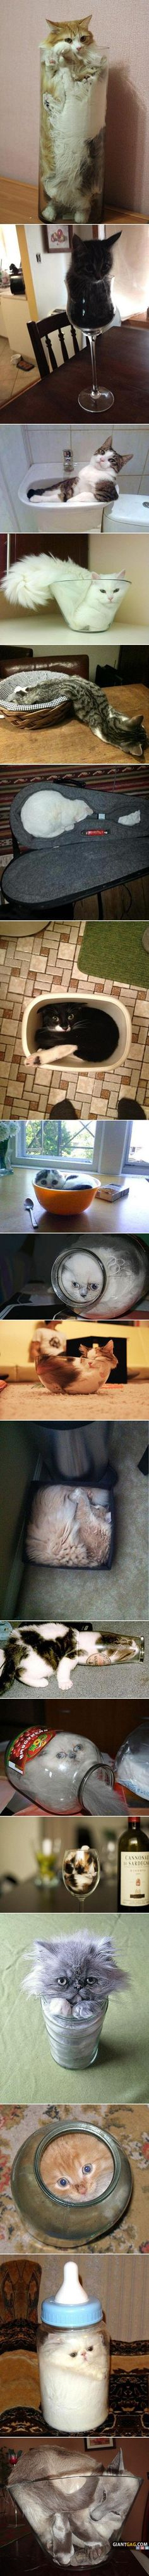 Cats Are A Liquid (Compilation), click the link to view more funny pictures !